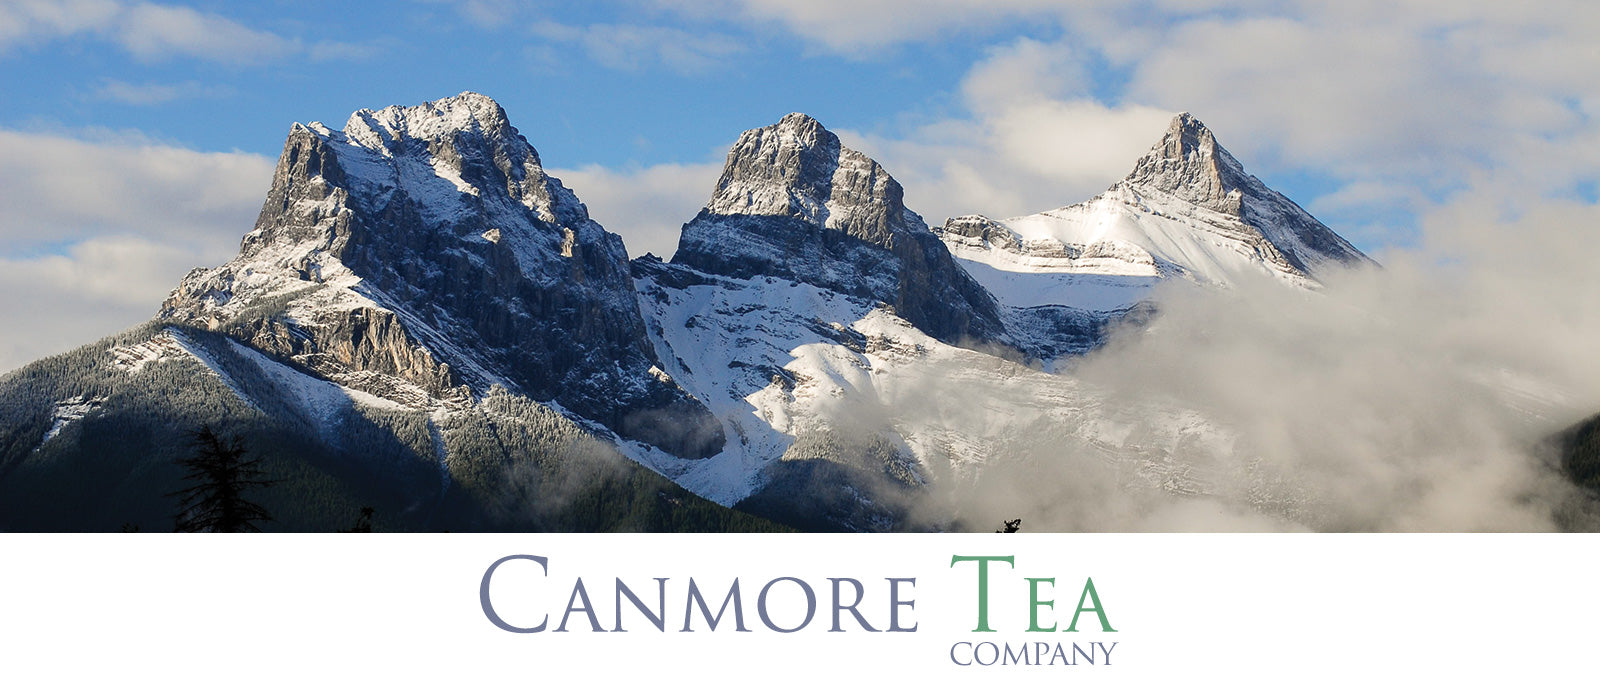 Canmore Tea Company - Buy Loose Leaf Tea Online and In-Store